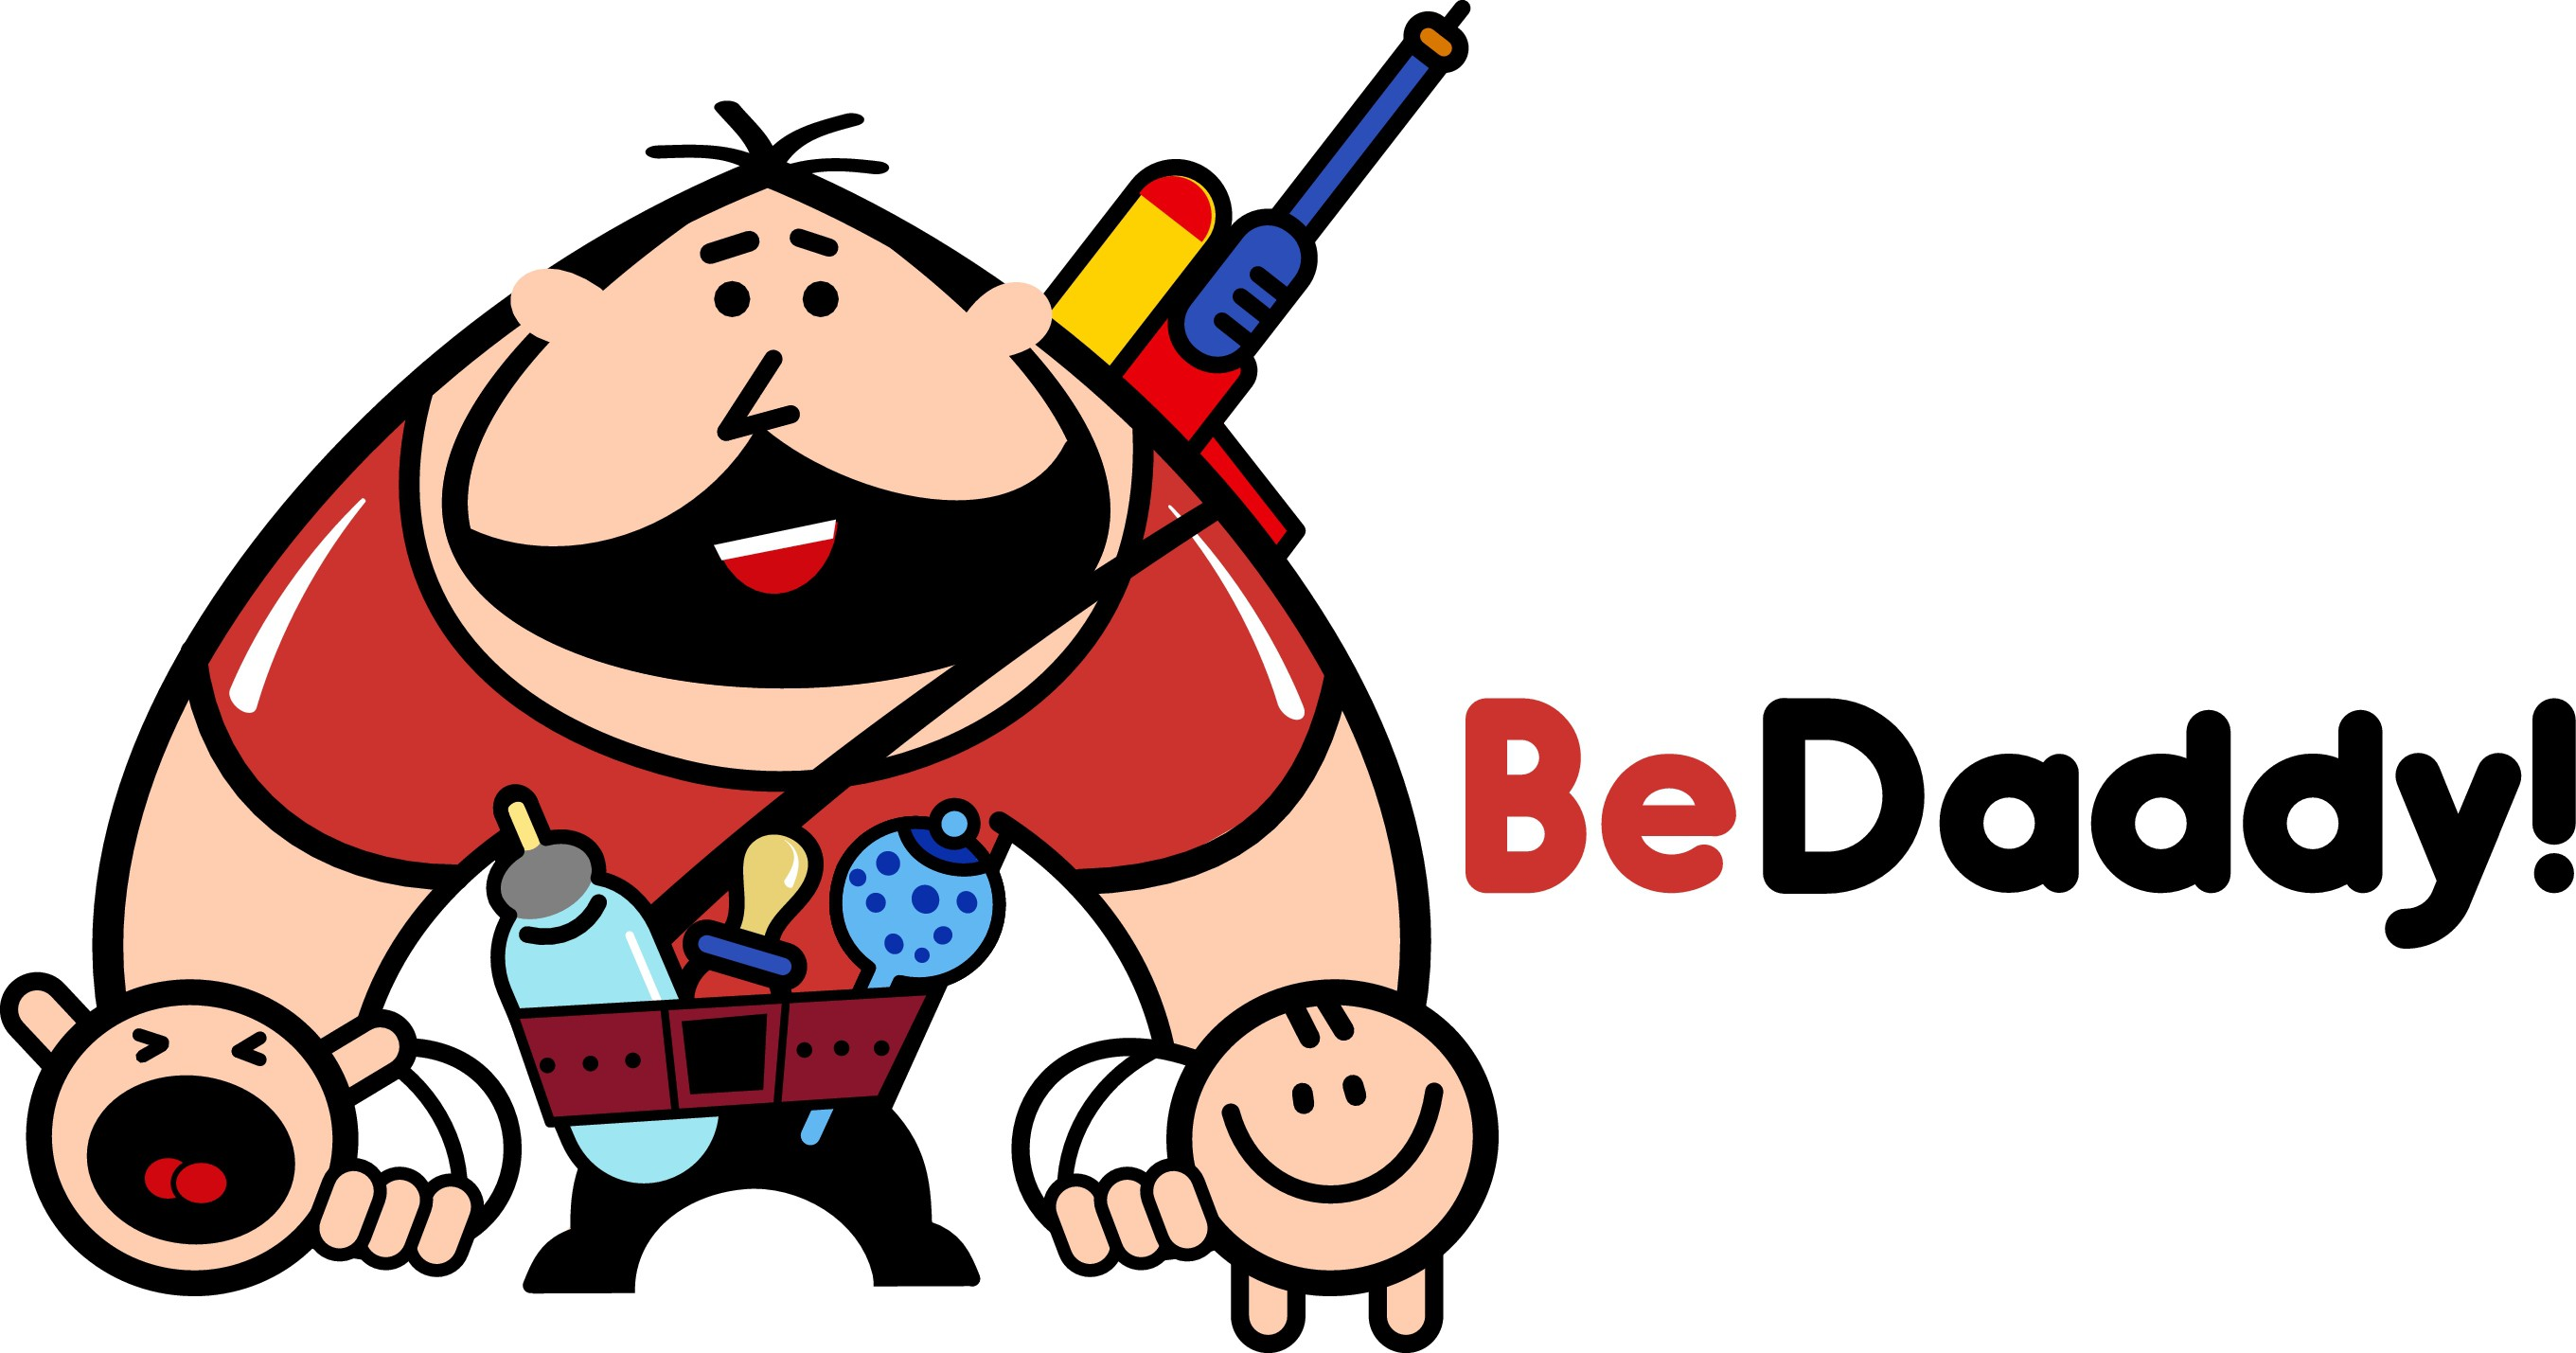 New Daddy Blog needs help!!! Looking for a funny an cool logo!